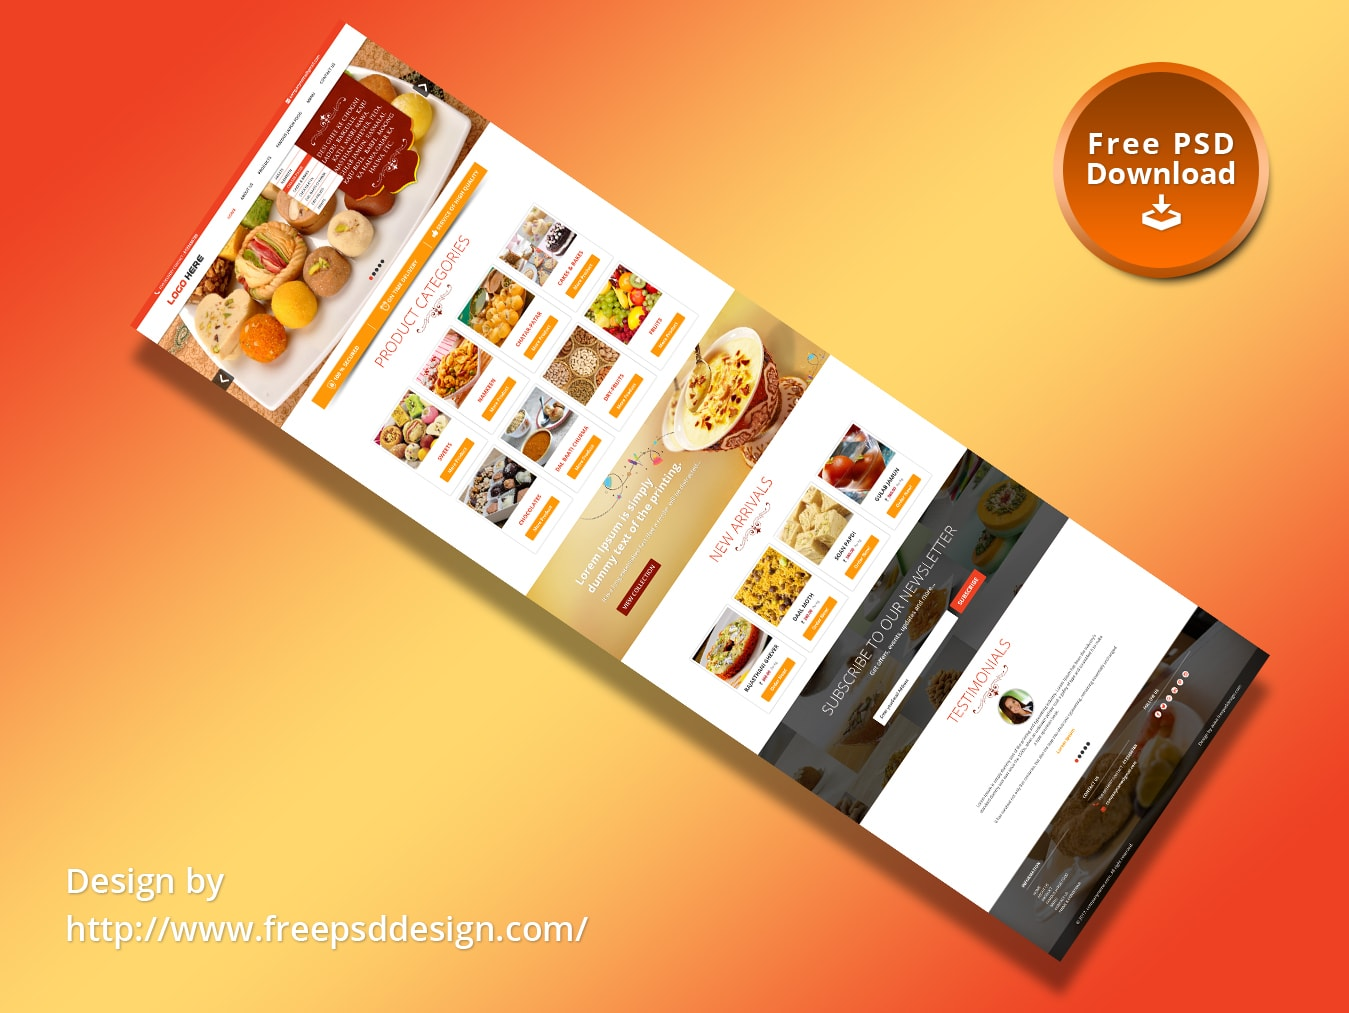 Psd design download